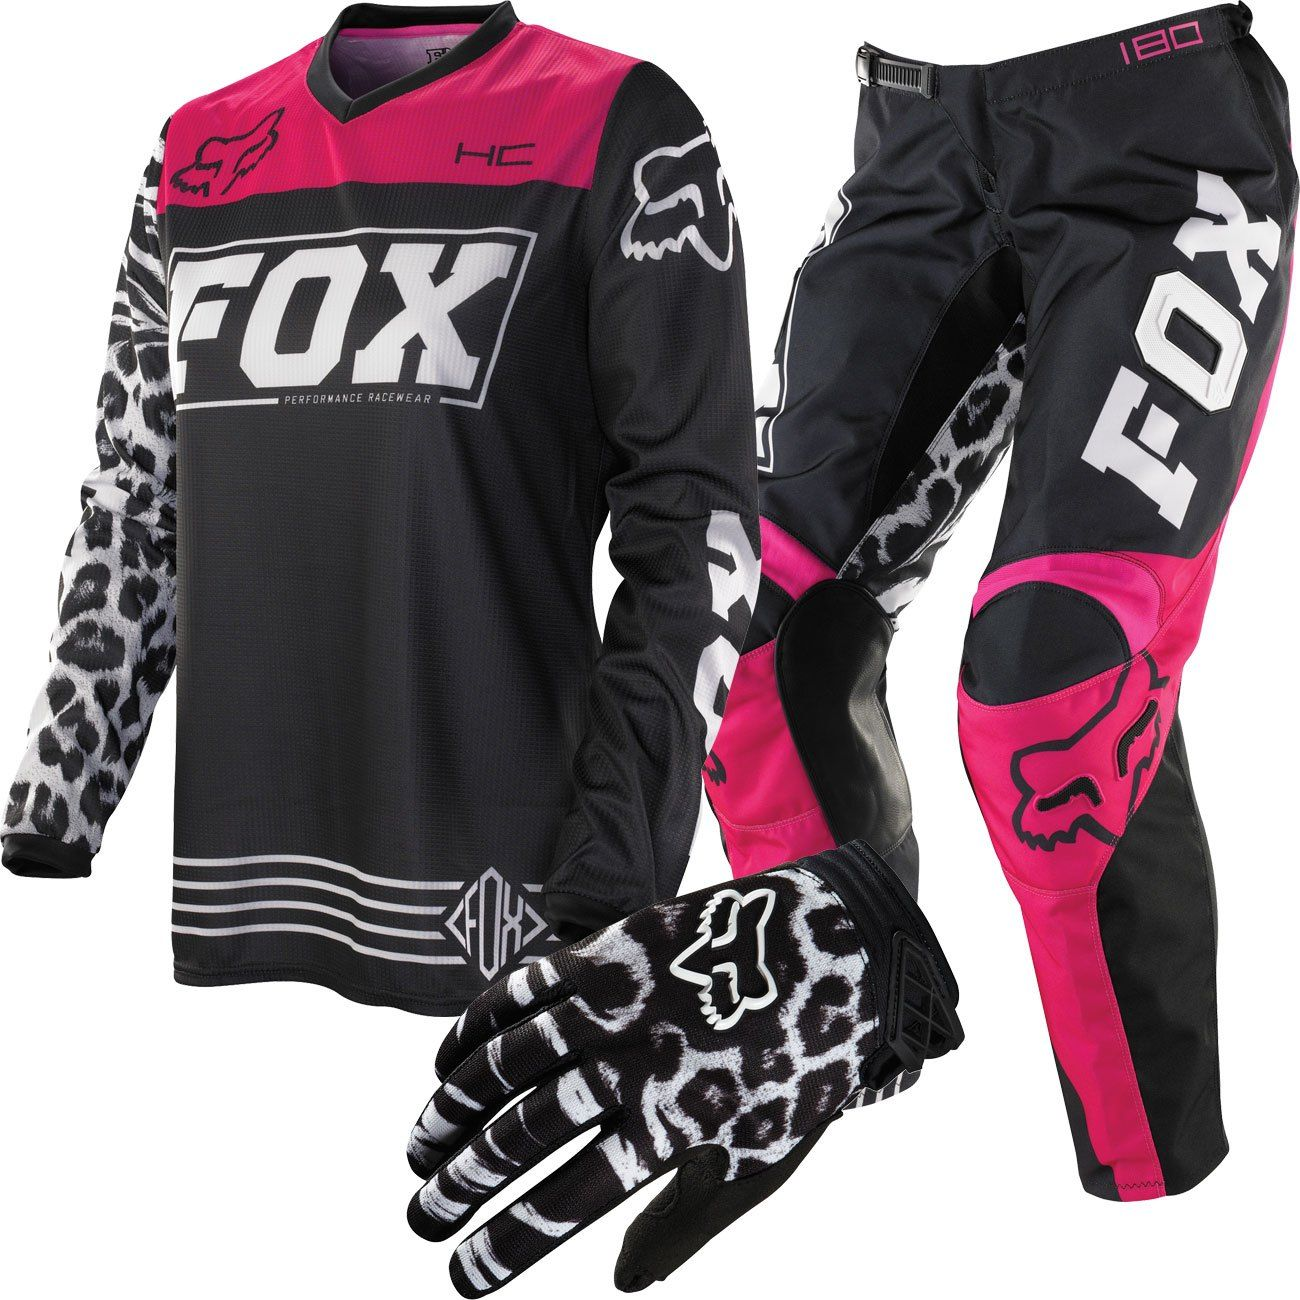 Fox Racing Hc180 Womens Package Deal - Chaparral -5755